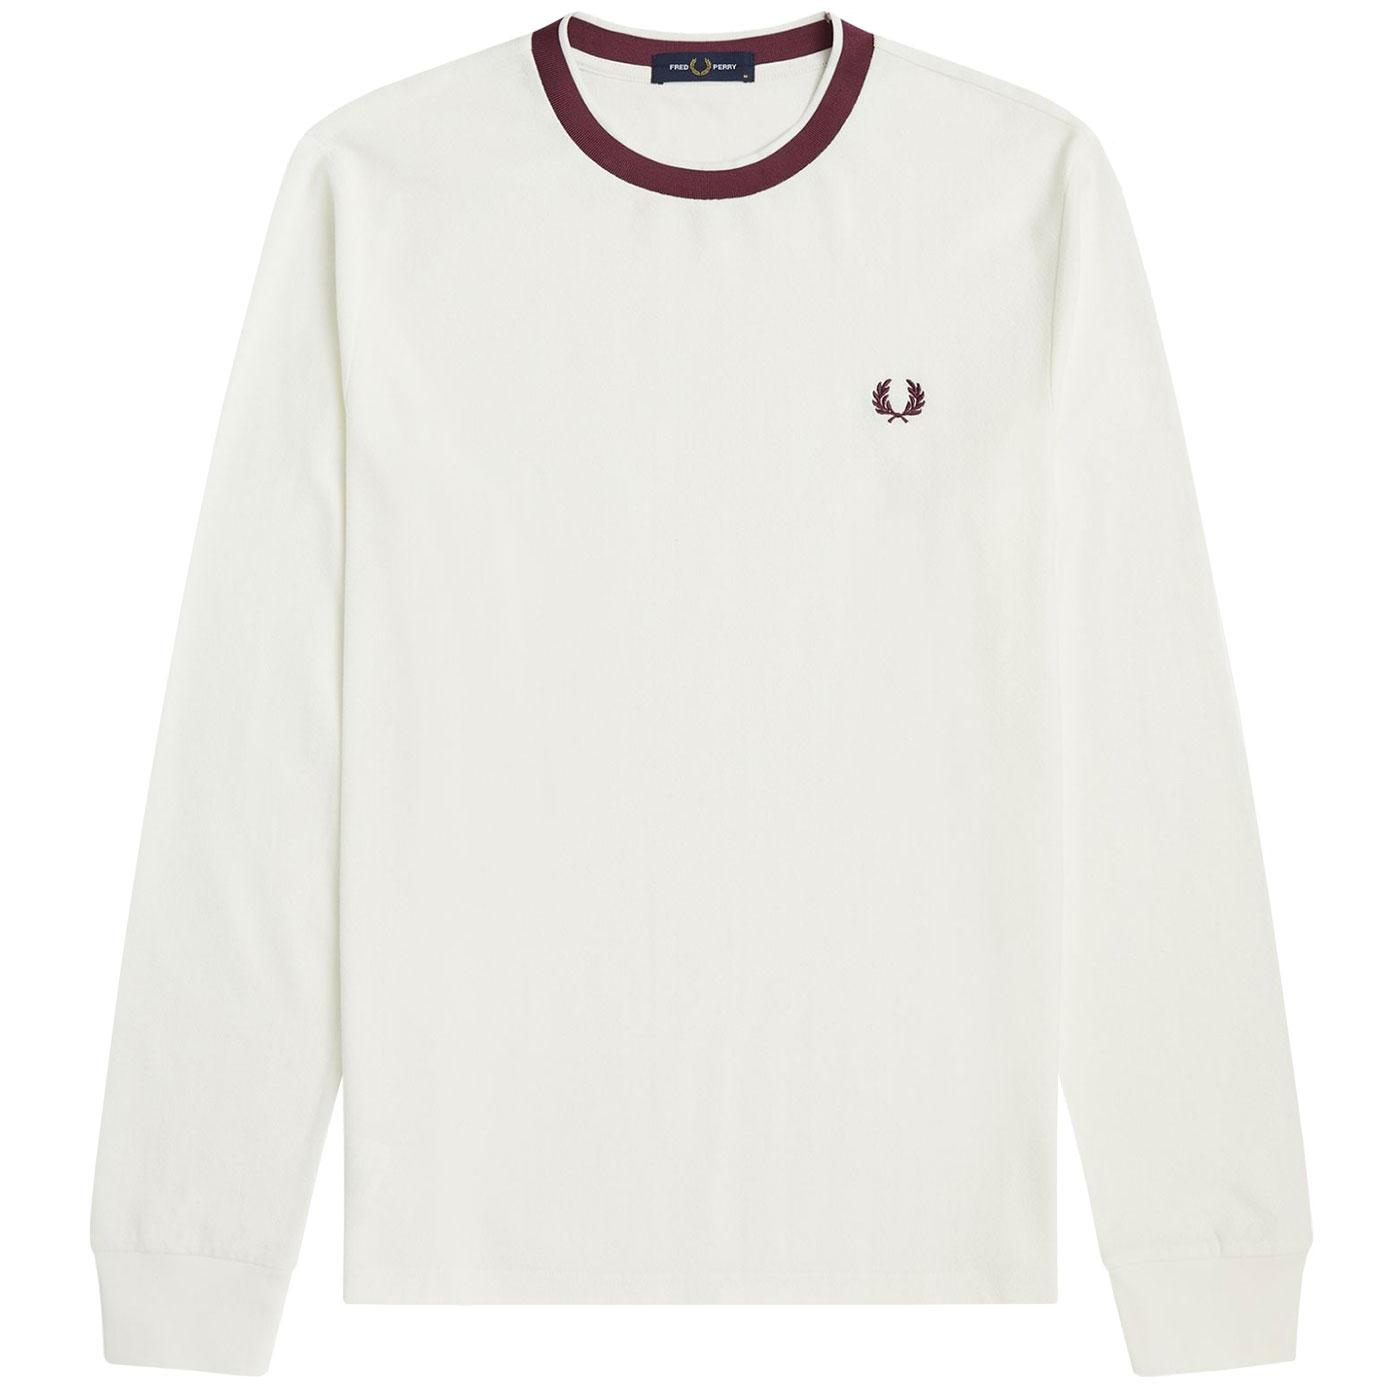 FRED PERRY Long Sleeve Crepe Jersey Ringer Tee